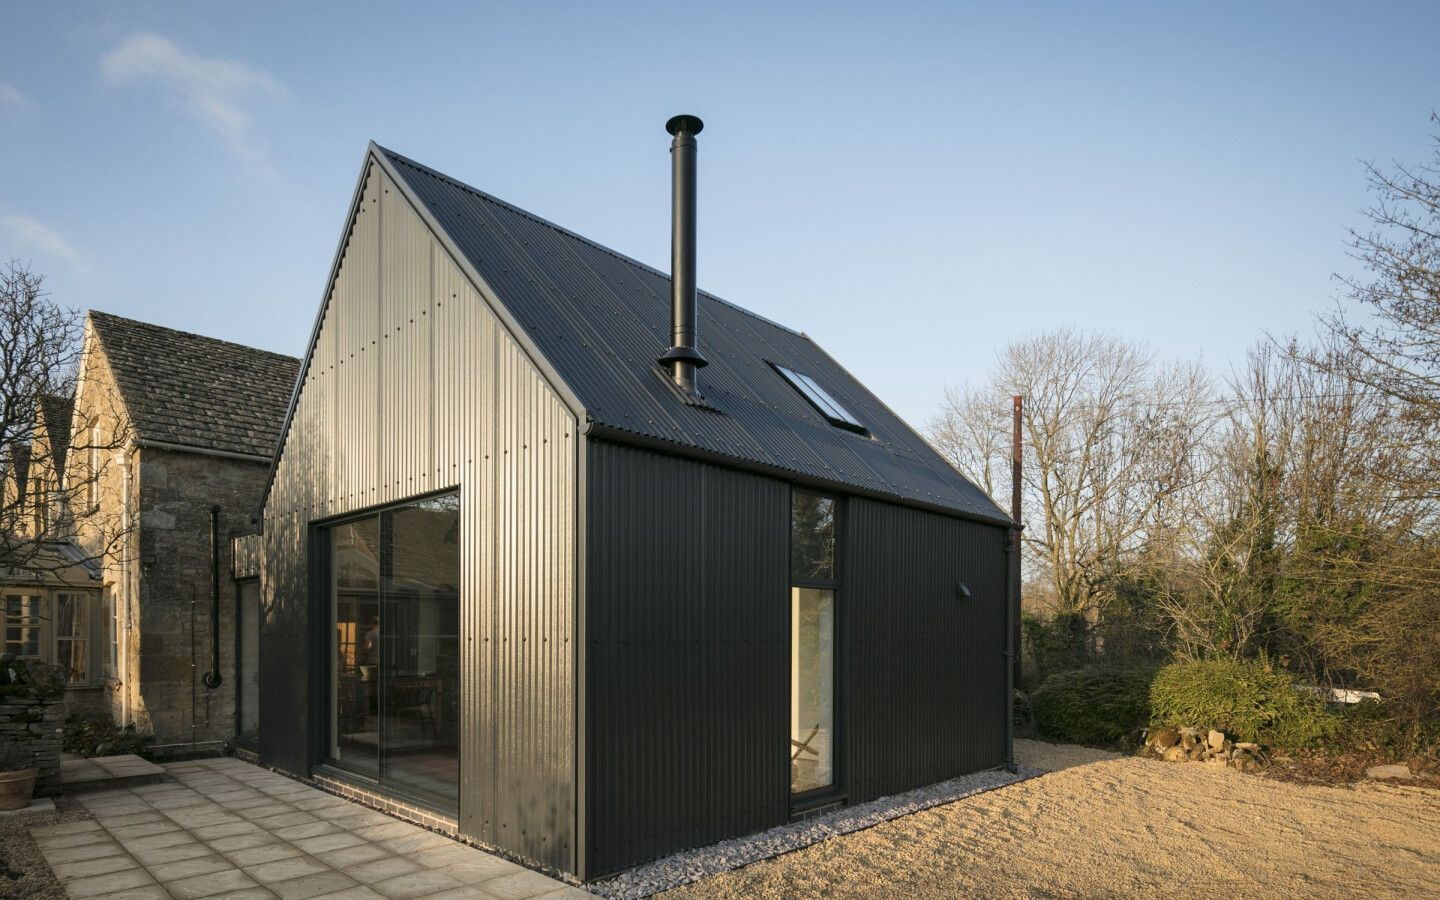 Corrugated Metal Extension Eastabrook Architects Archello In 2020 Corrugated Metal Roof Corrugated Metal Stone Cottages